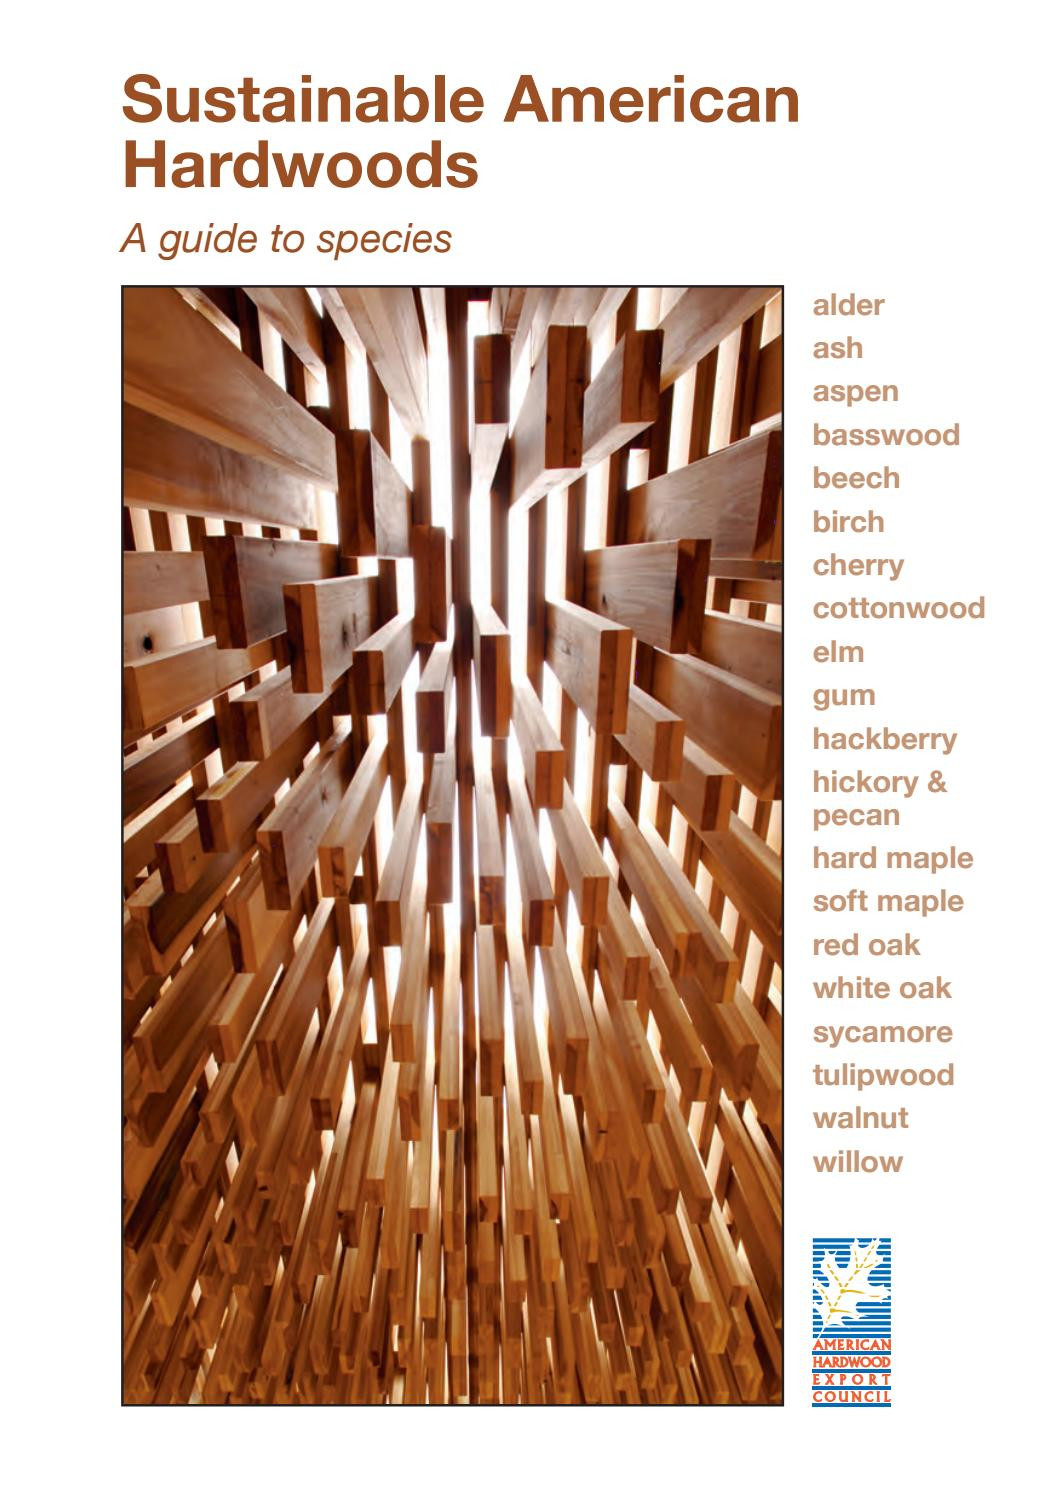 maple hardwood flooring hardness of sustainable american hardwoods a guide to species by american inside sustainable american hardwoods a guide to species by american hardwood export council issuu